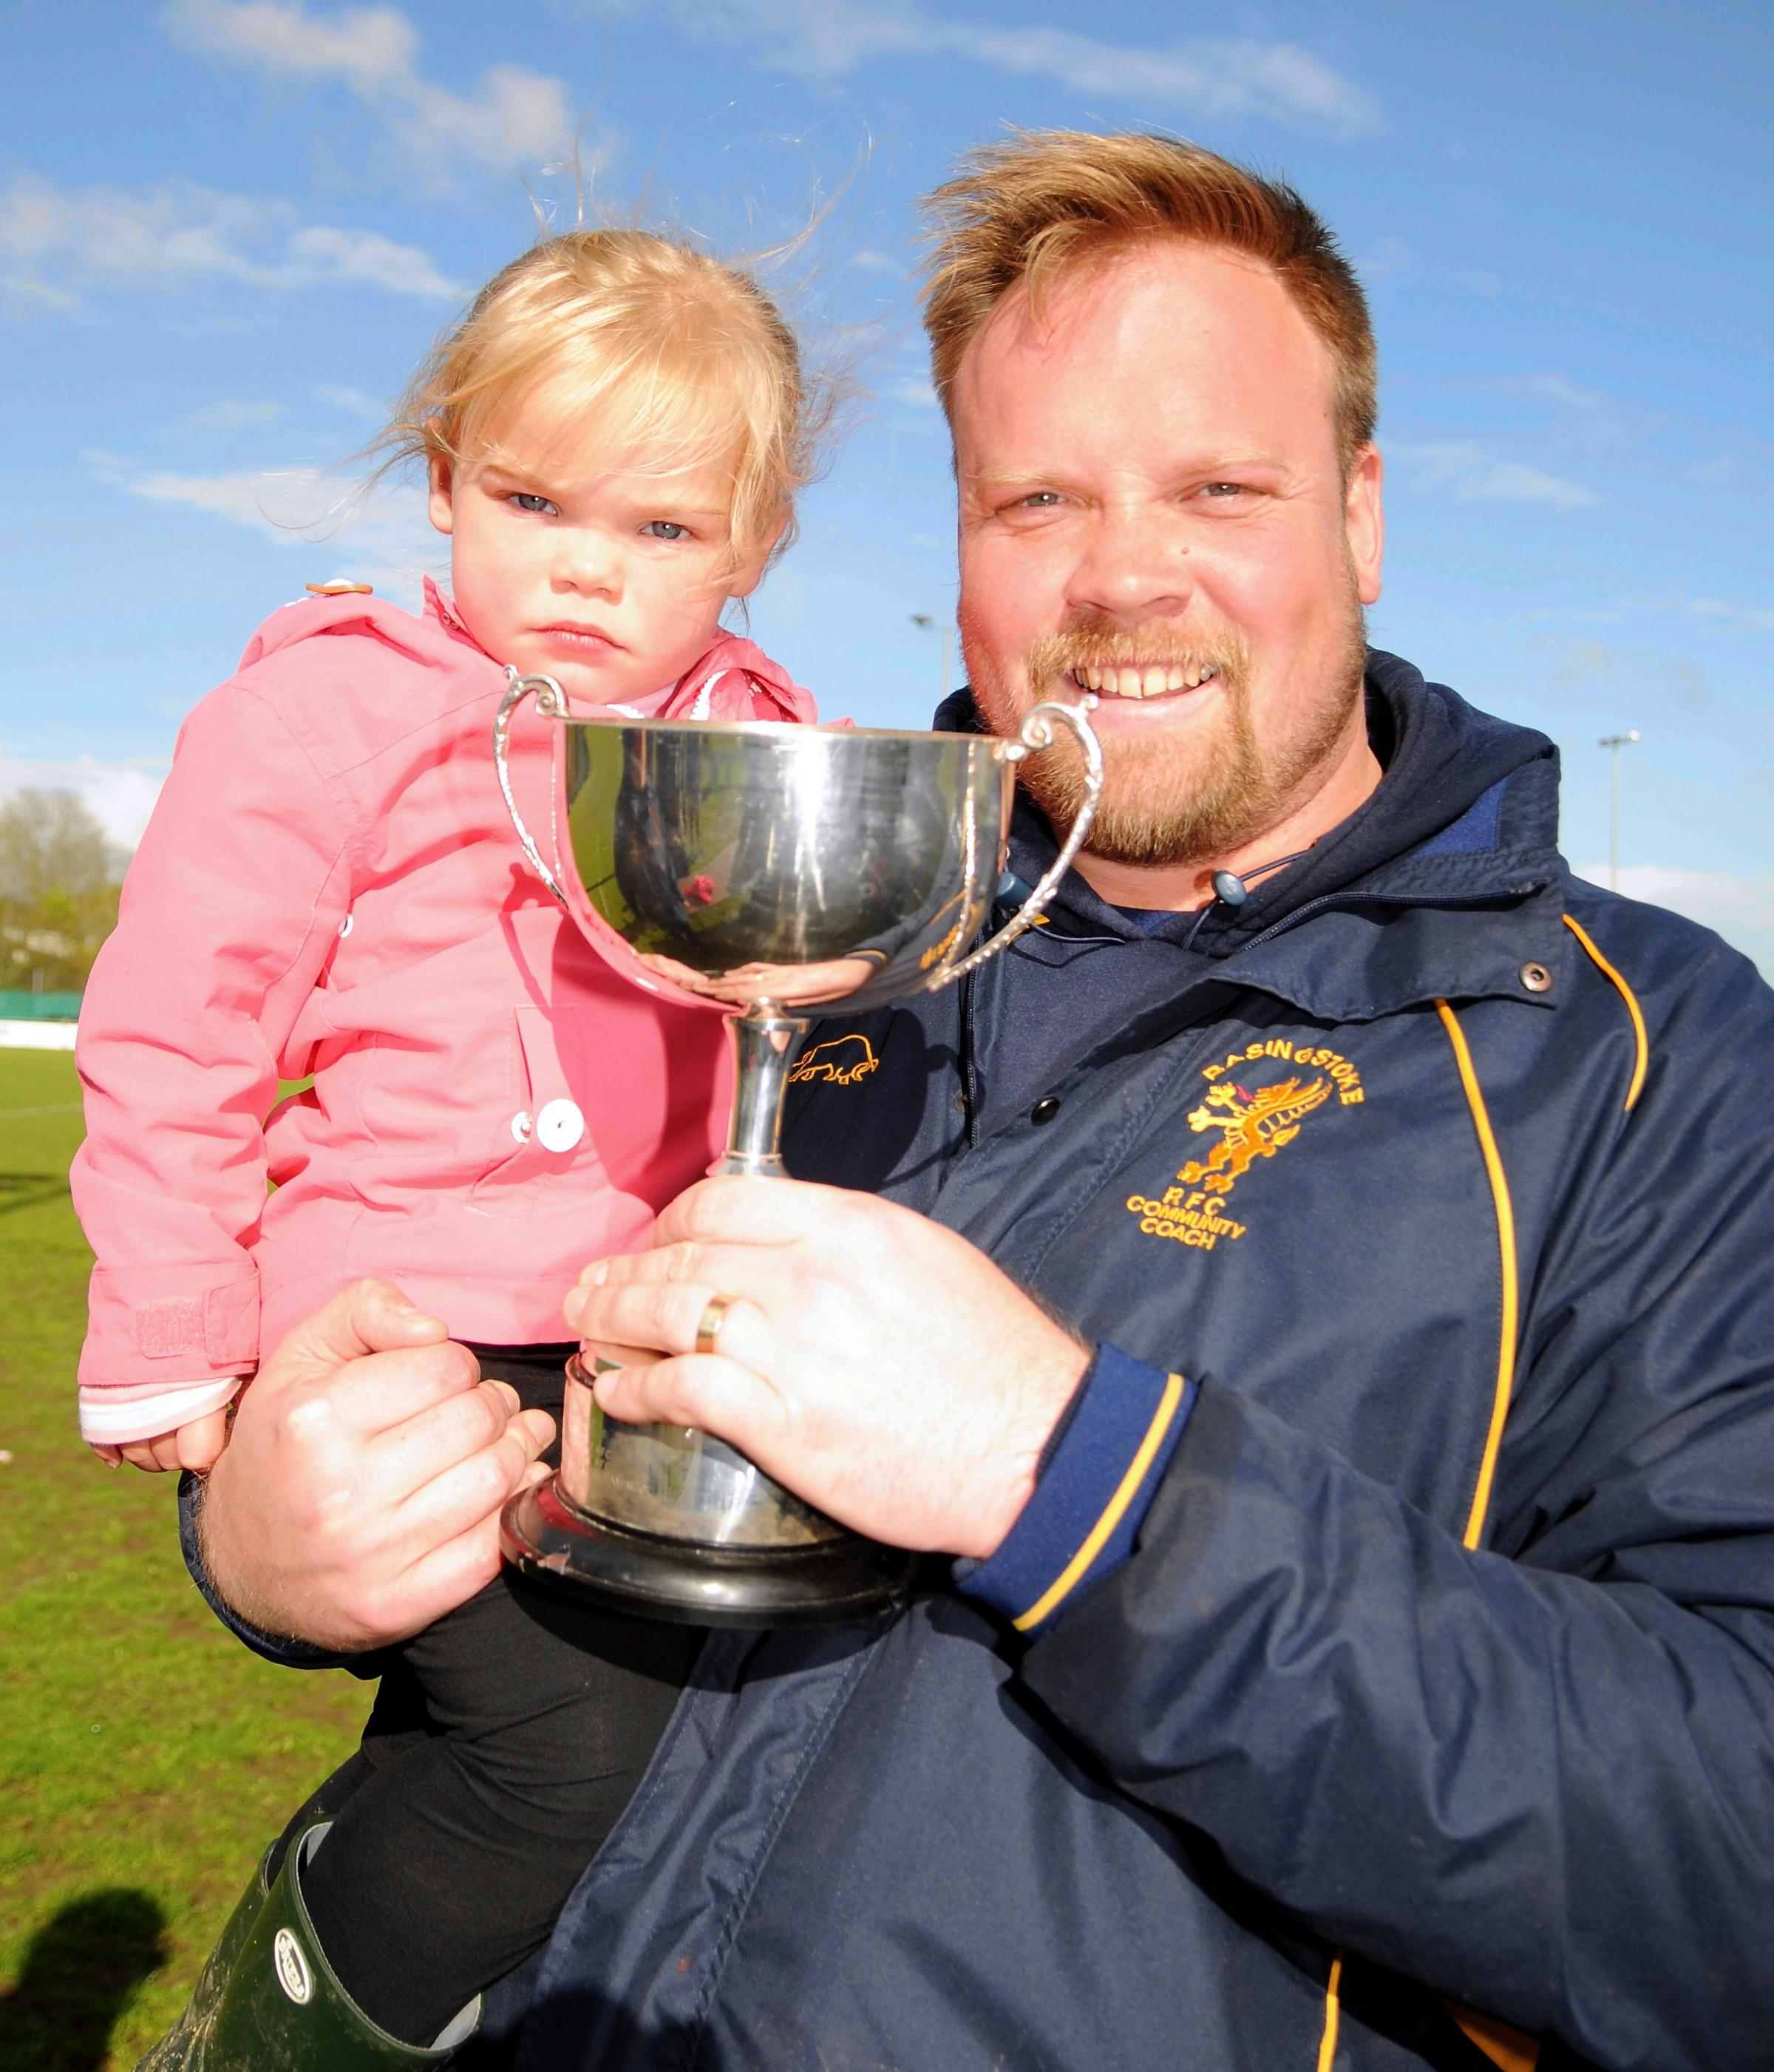 James Croker celebrates winning the Hampshire Cup with his daughter, Lucy